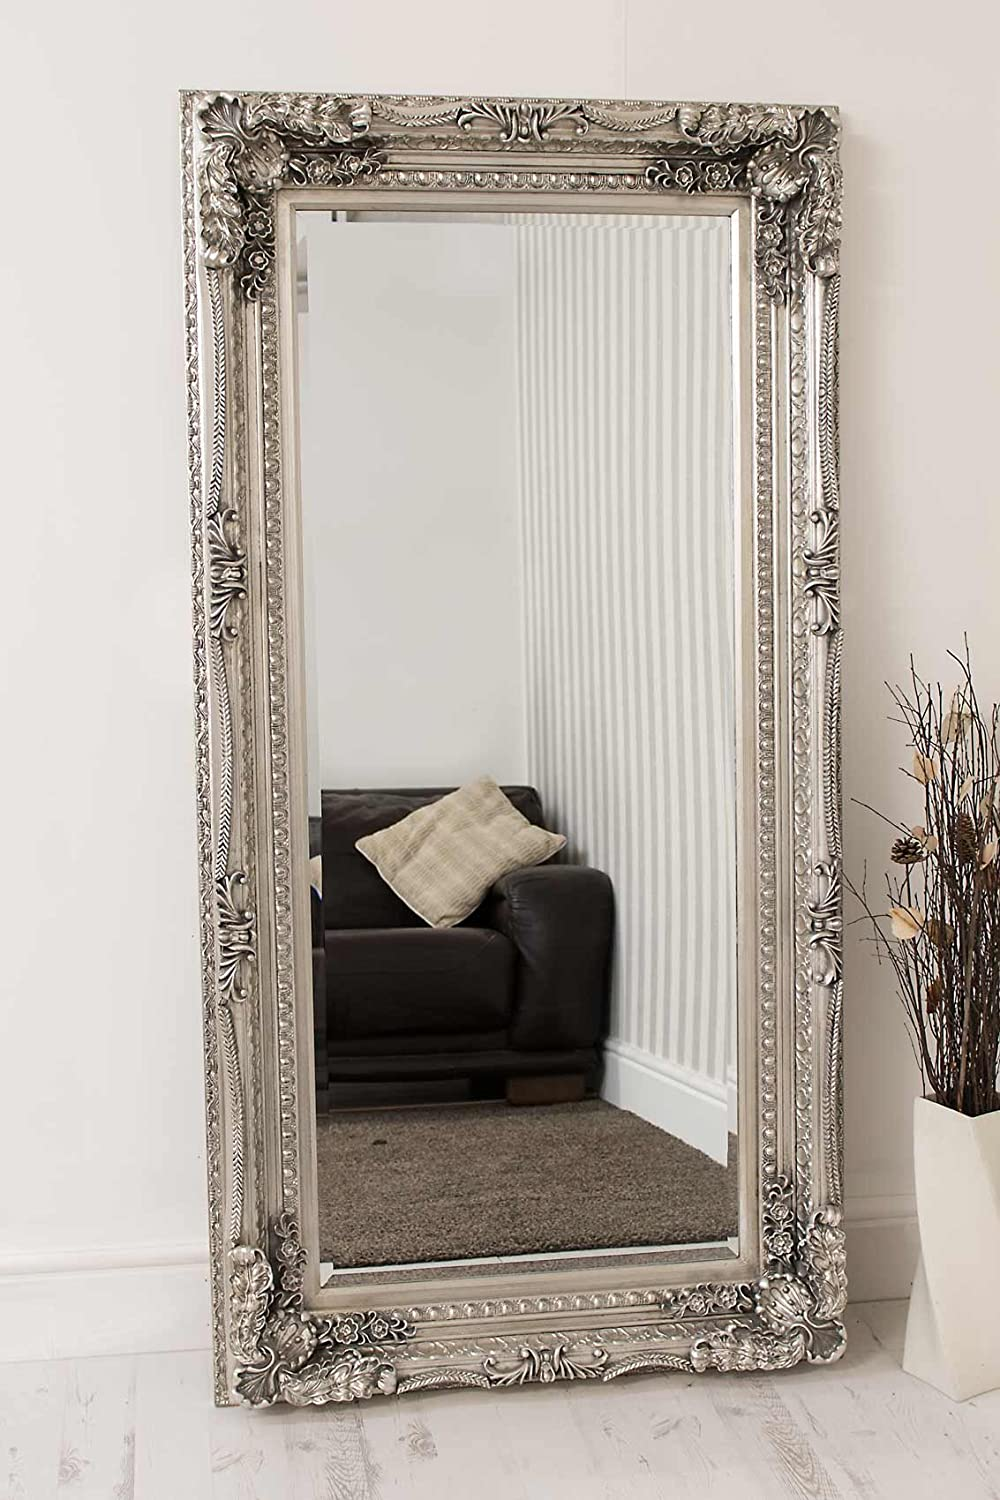 King louis leaner wall mirror silver 7ft x 3ft ebay for Leaner mirror